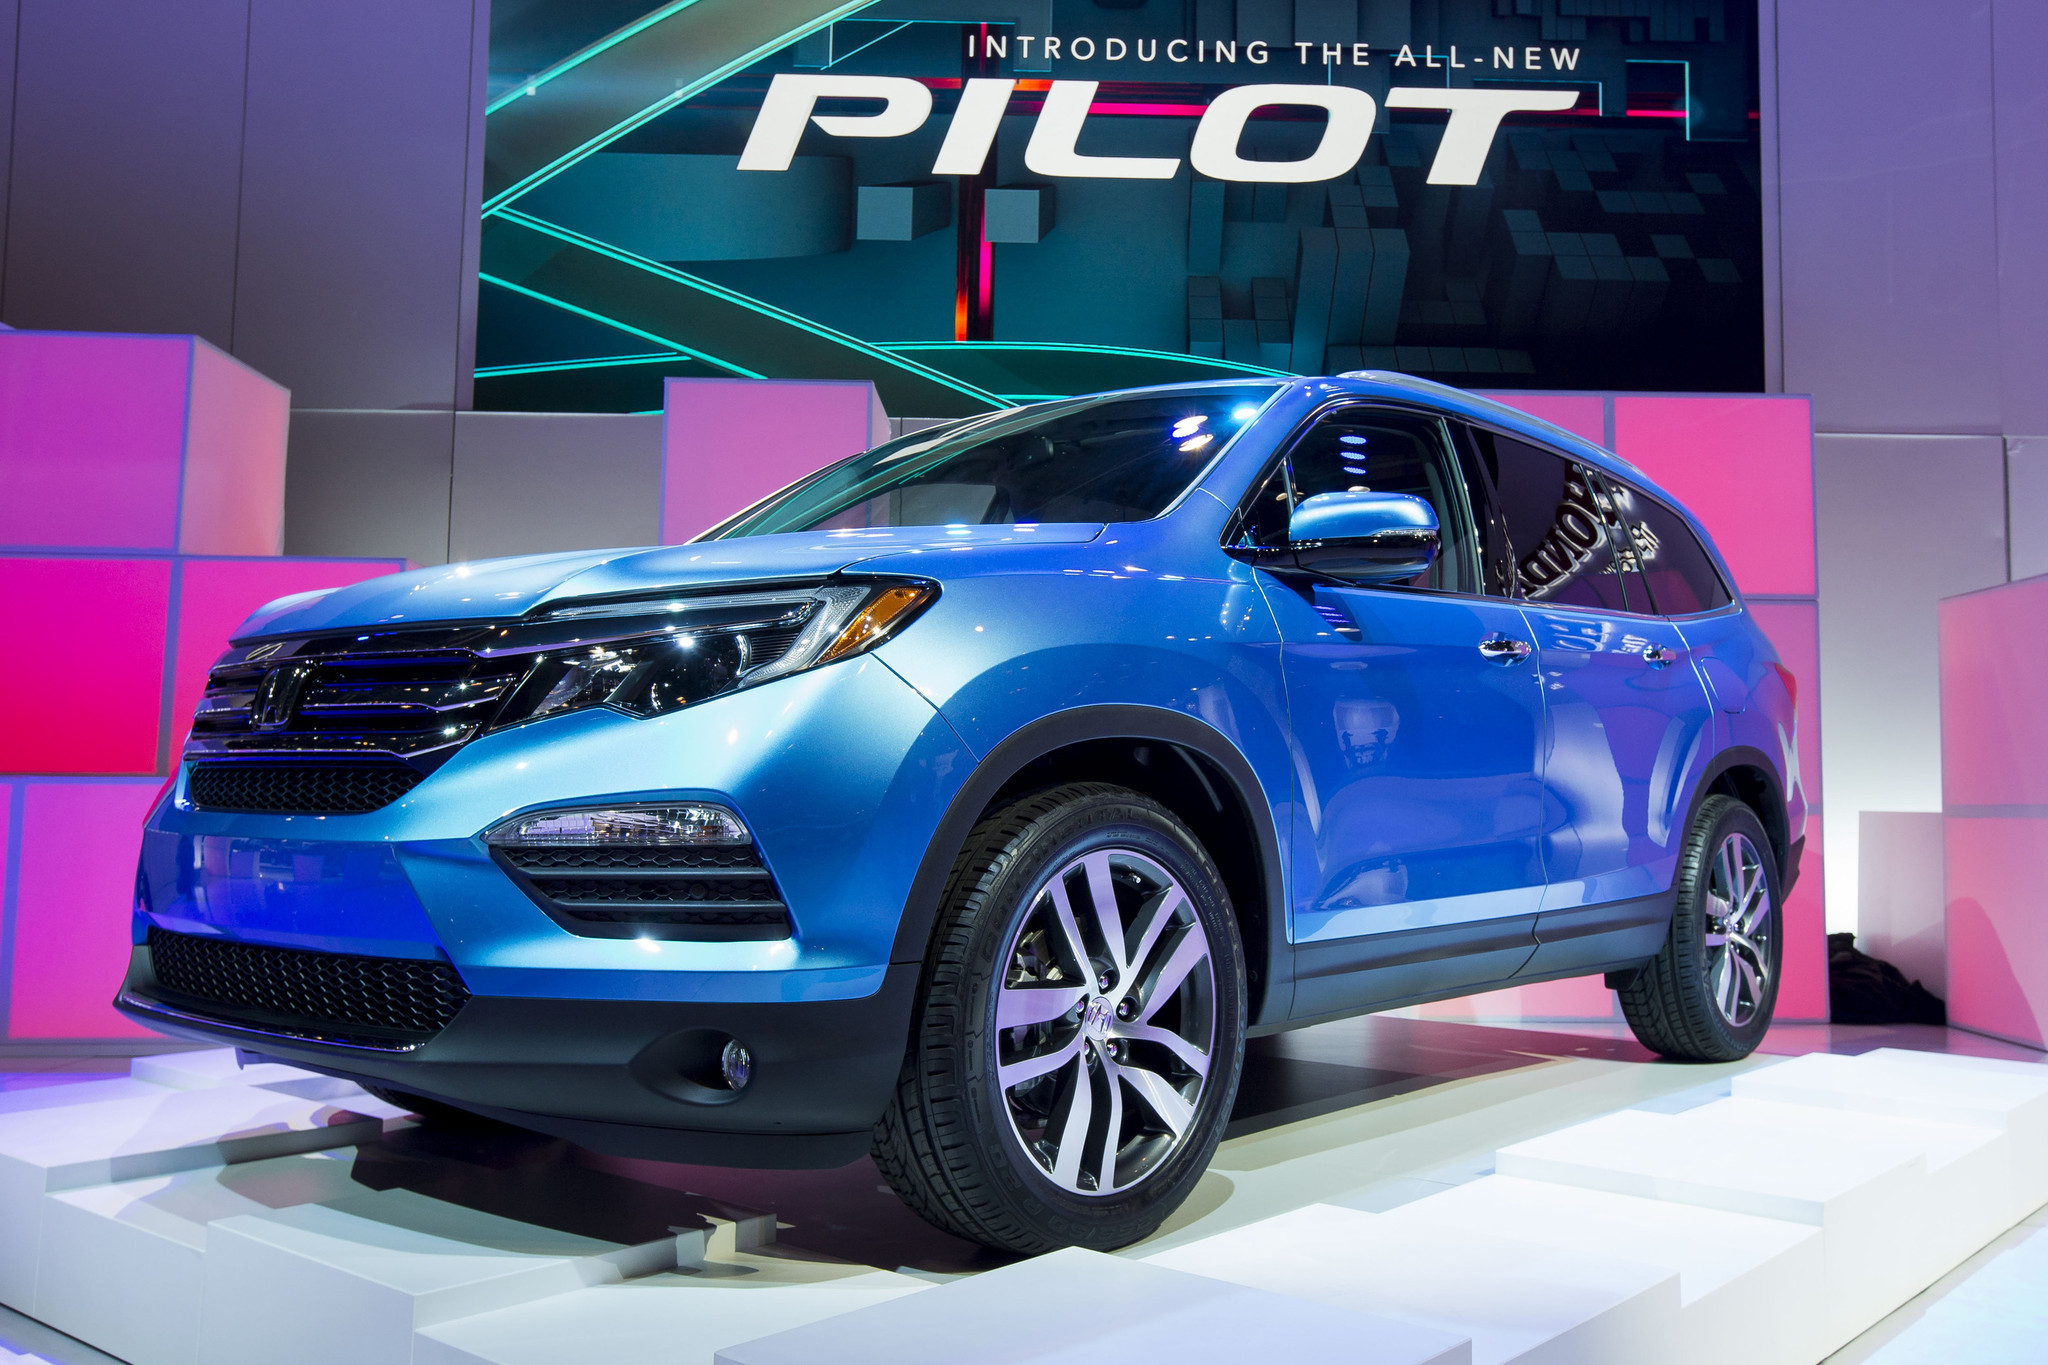 Chicago Auto Show Targets Sports Cars And Small Crossovers - Mccormick place car show